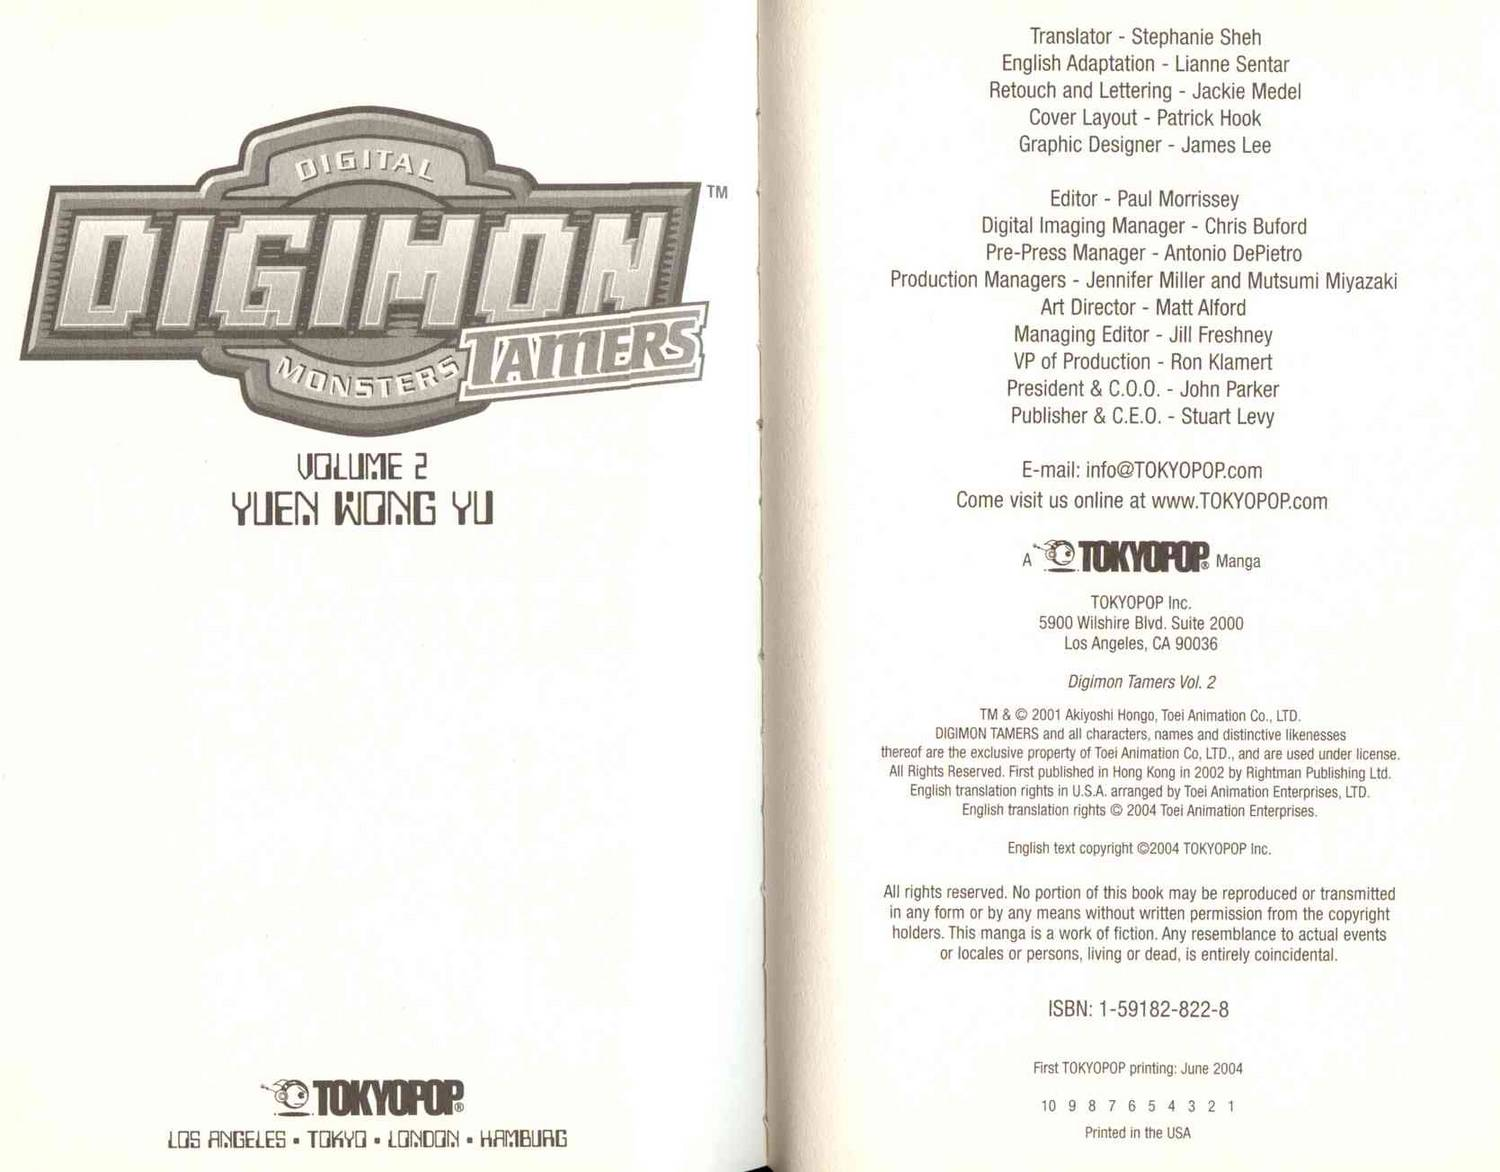 Digimon Tamers Vol.2 Ch.08-14 page 5 at www.Mangago.com